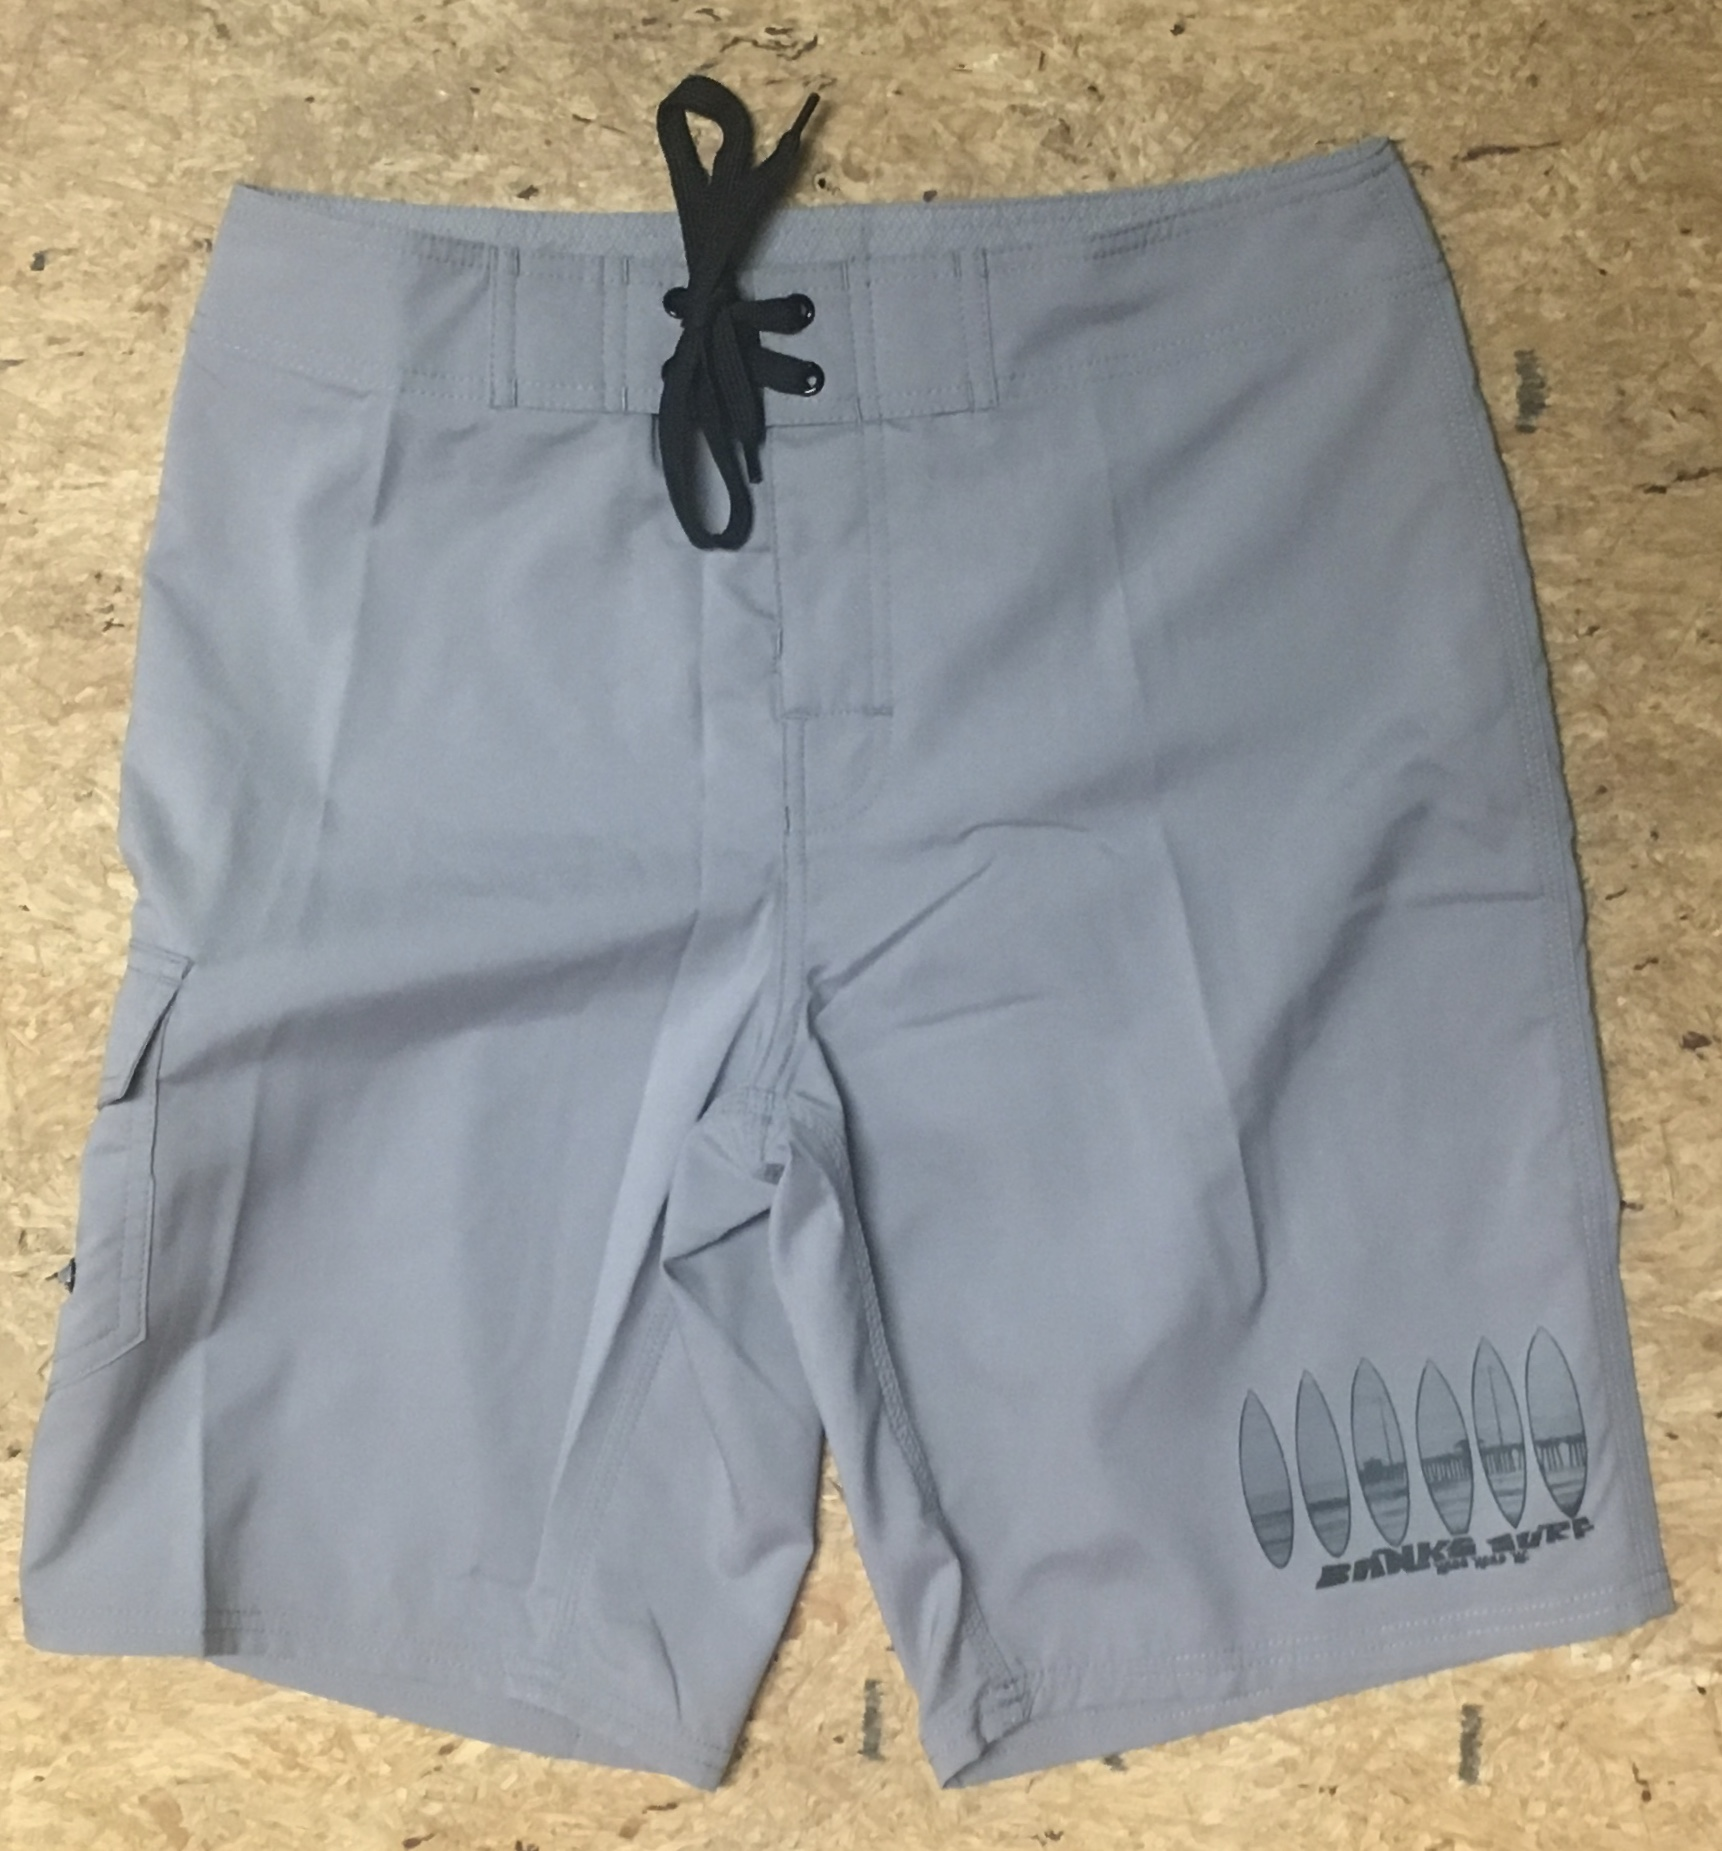 Banks Surf Supply Backyard Break Boardshort Grey